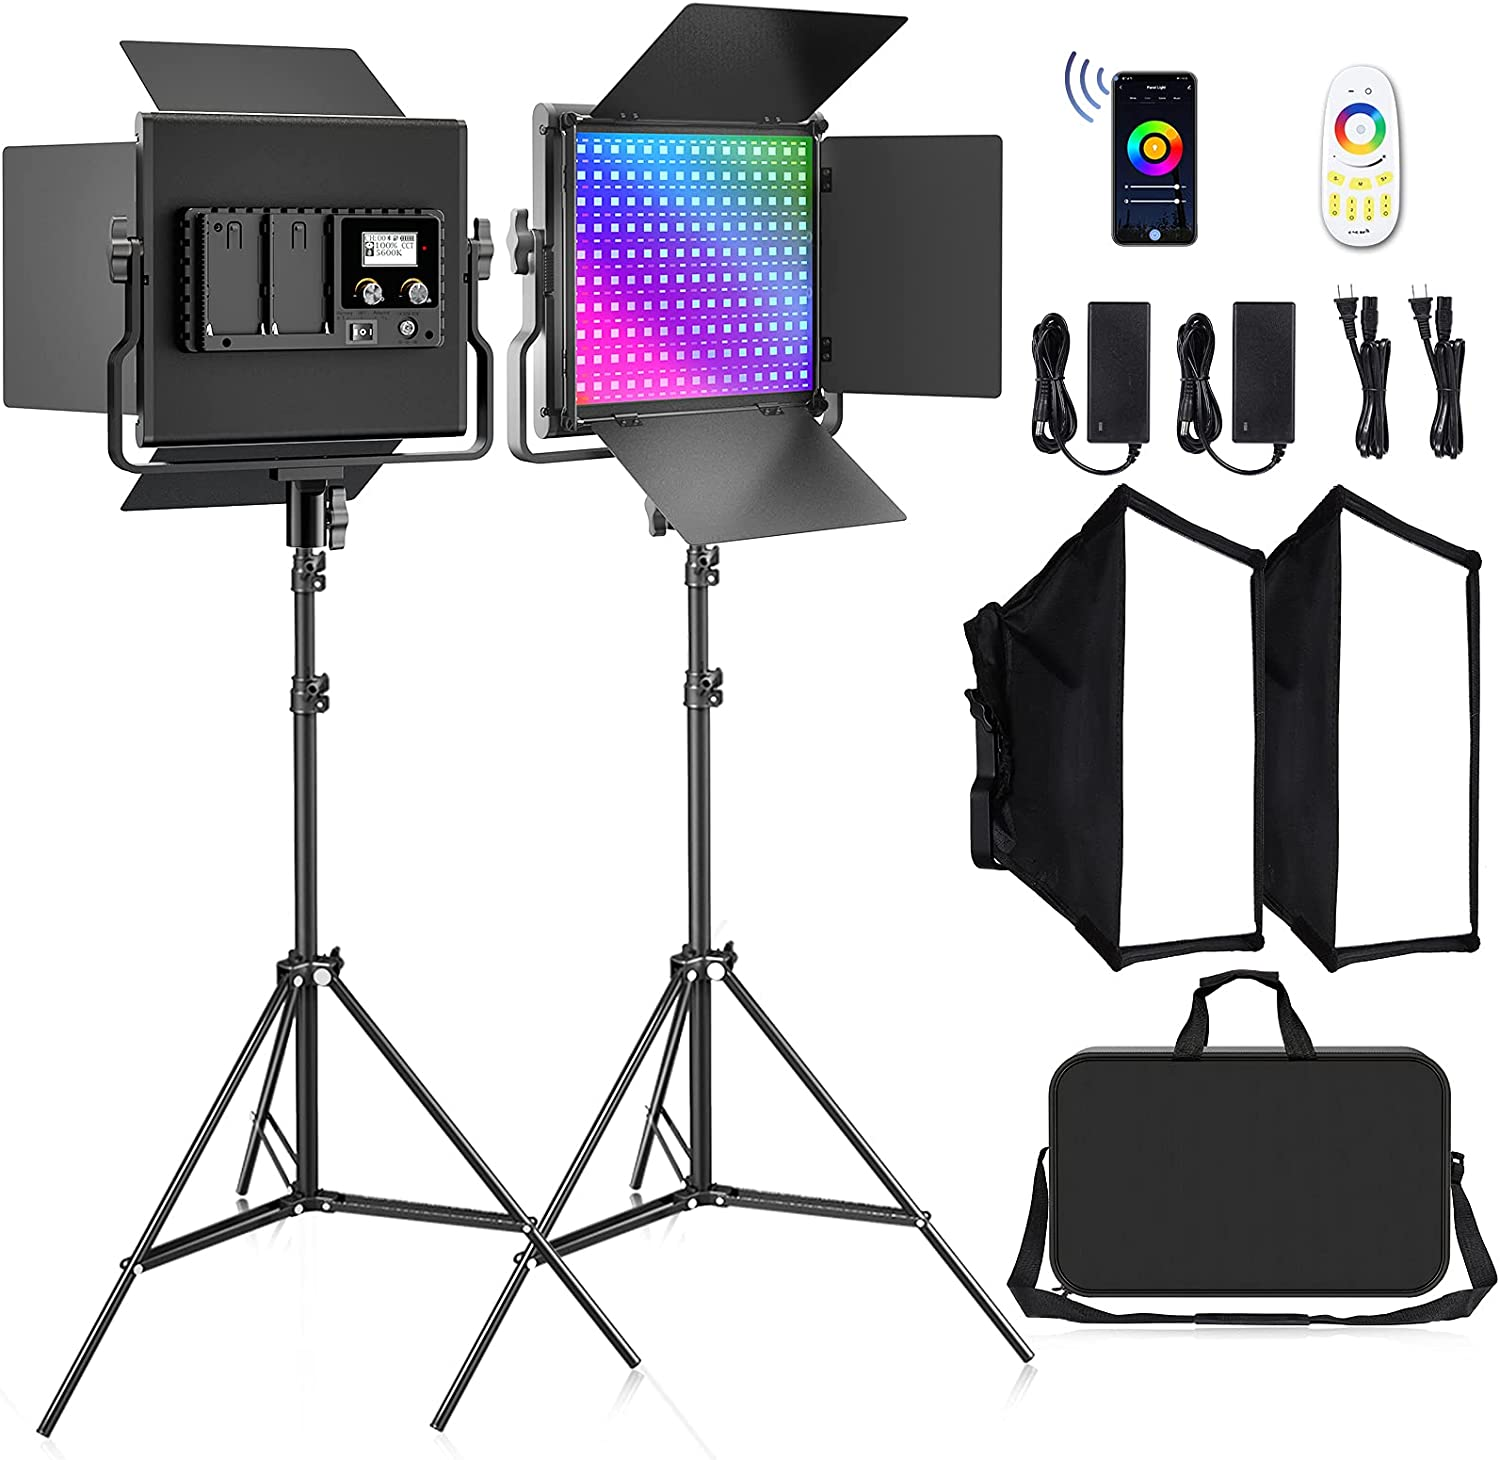 FOSITAN RGB LED Video Light, Video Lighting Kits with APP/Remote Control, CRI97/3200K-5600K/Brightness 0-100%/0-360 Adjustable Colors/8 Applicable Scenes Suitable for YouTube Video, Photography